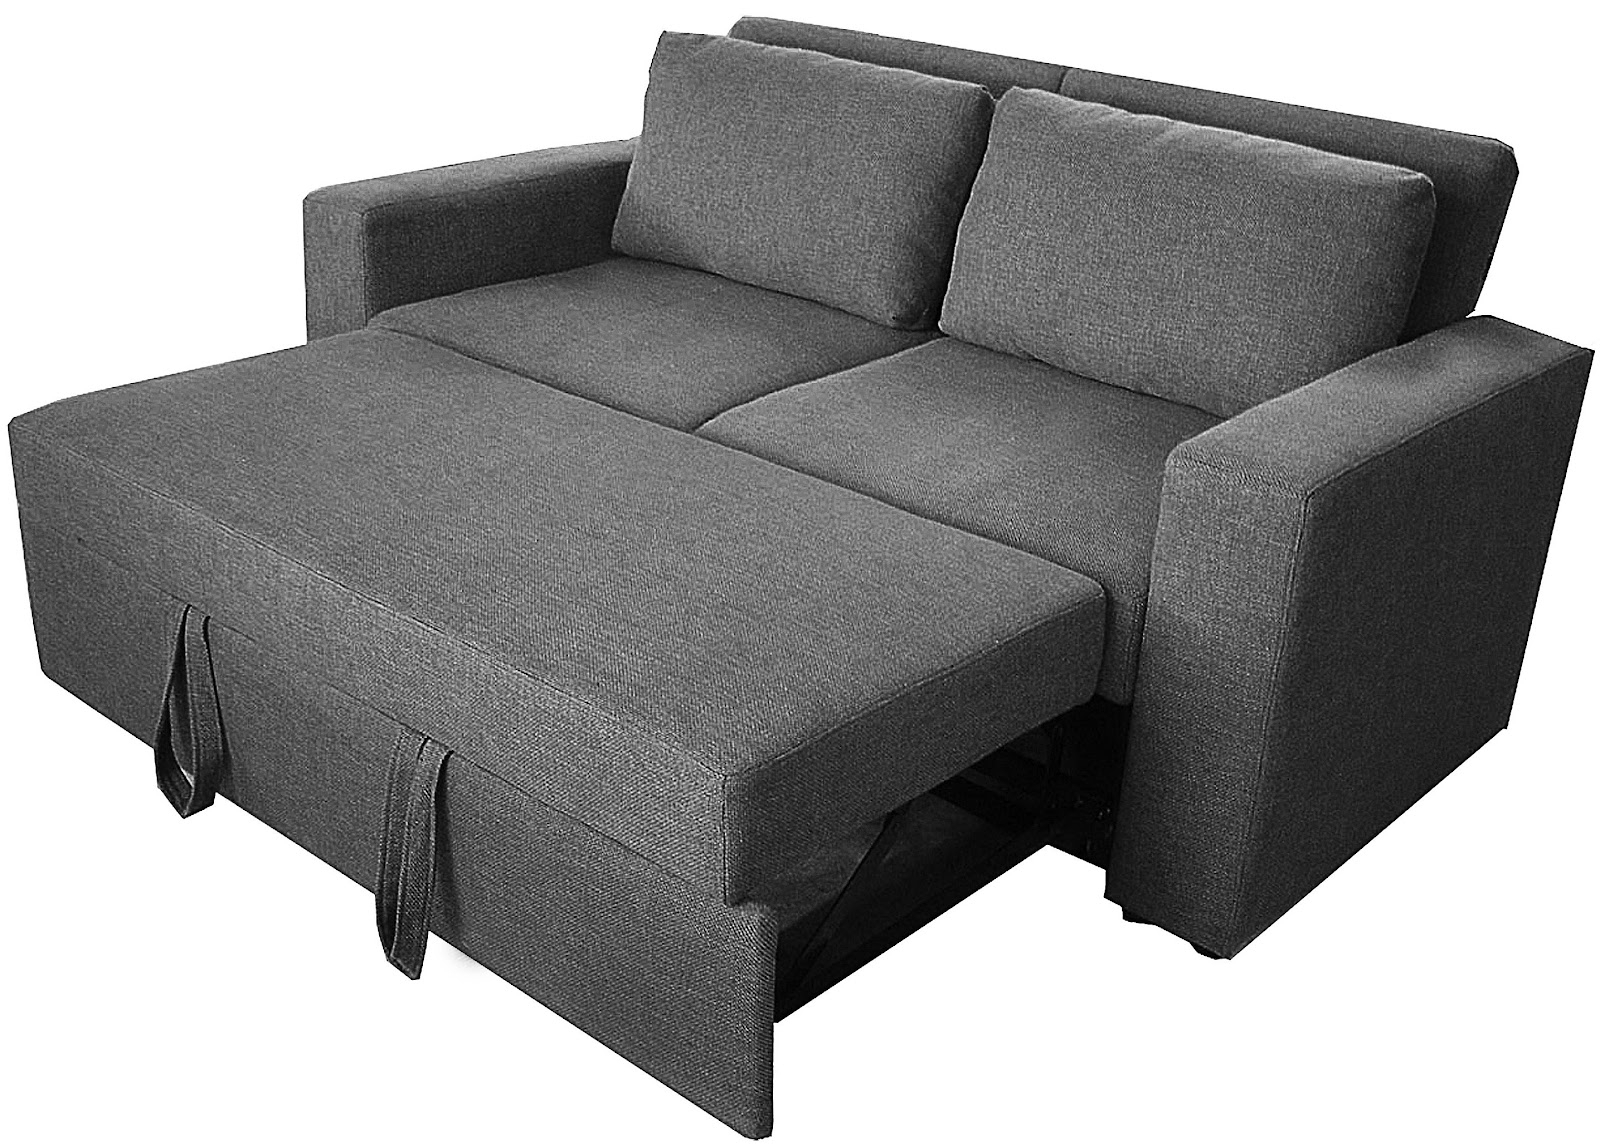 Favorite Awesome Great Sofa Bed Pull Out 56 For Your Small Home Decoration In Adjustable Sectional Sofas With Queen Bed (View 9 of 20)